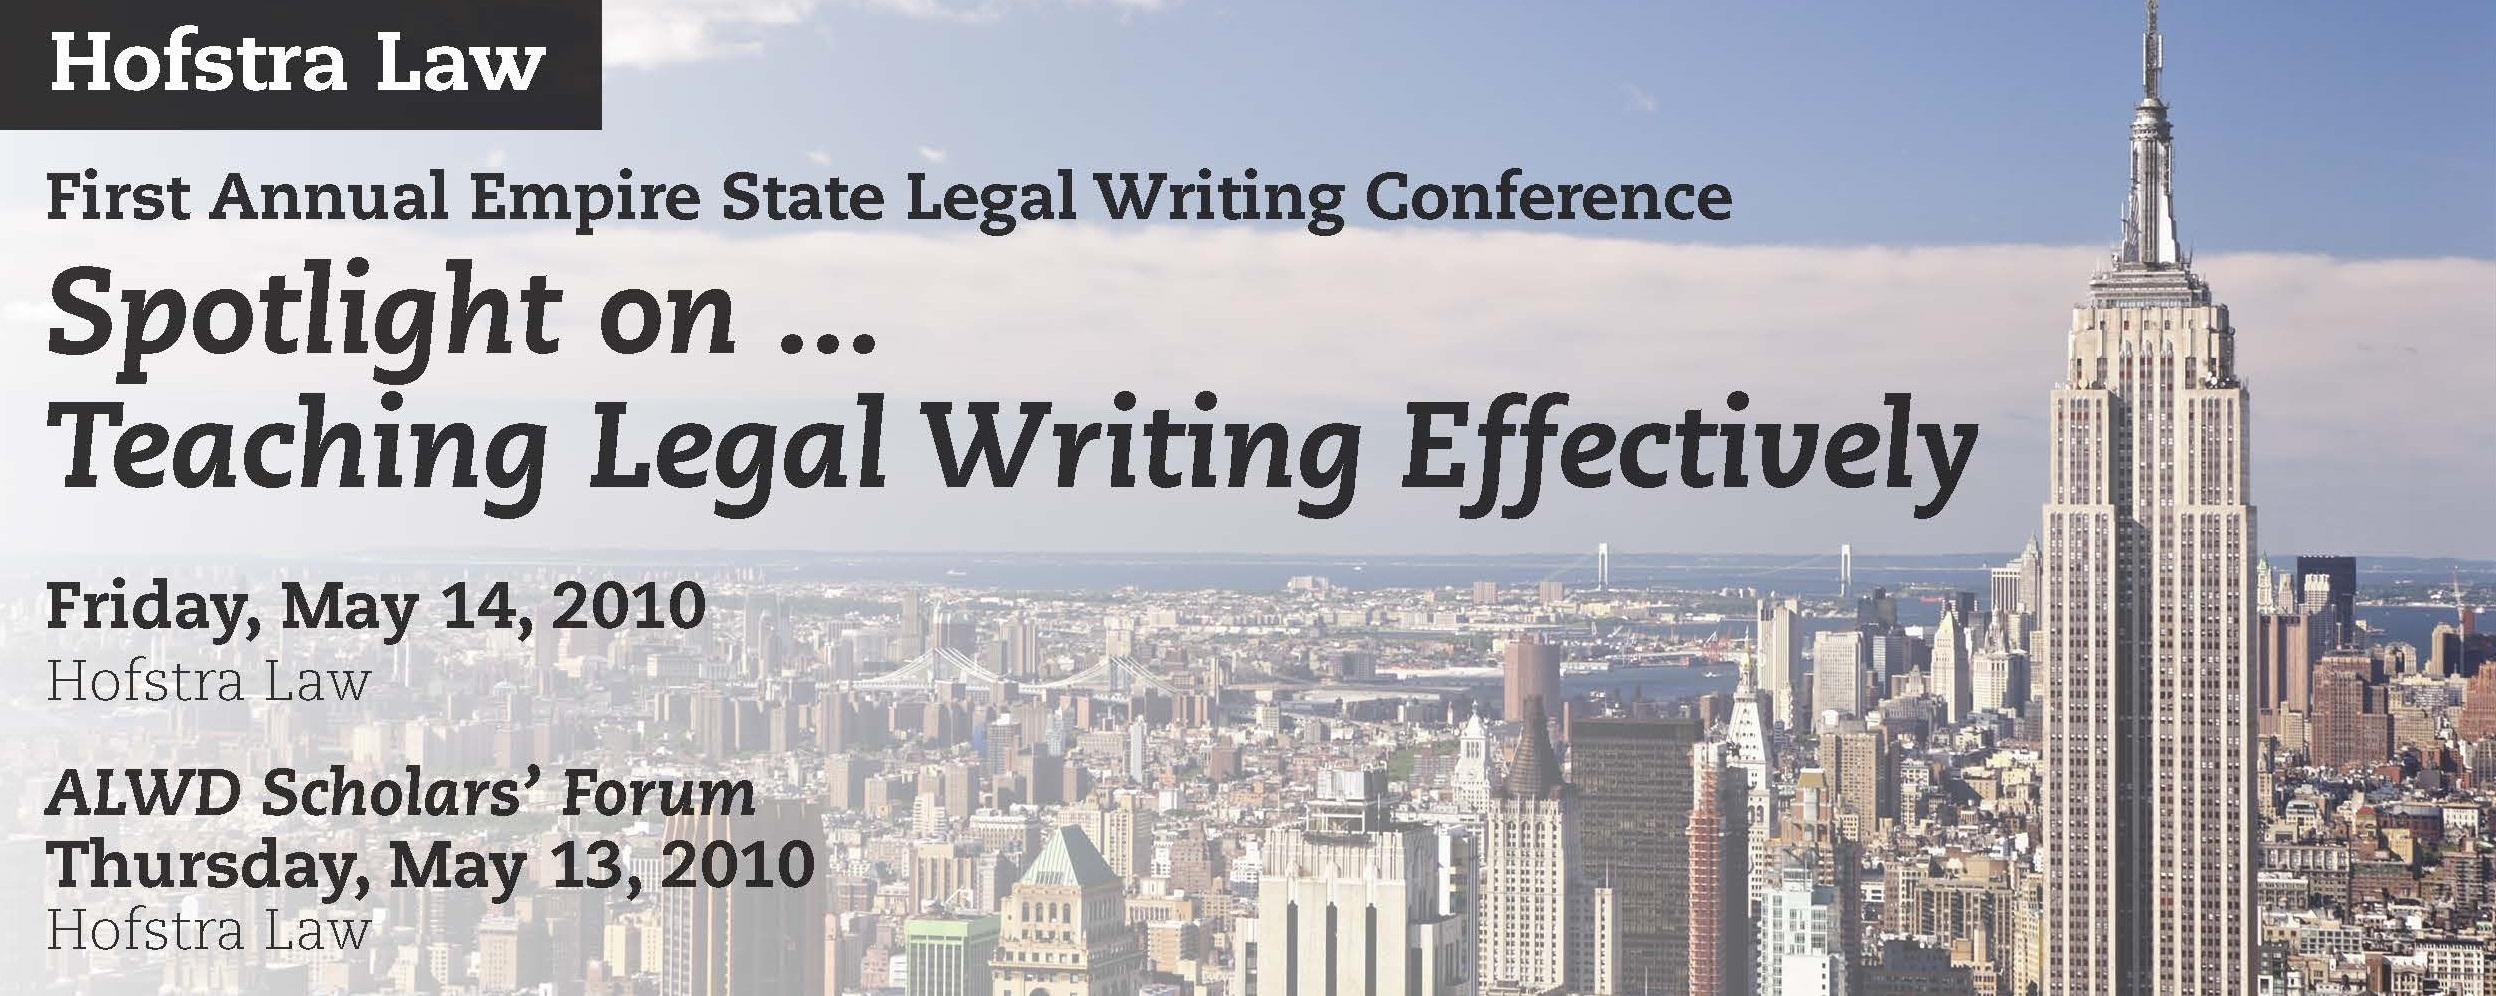 First Annual Empire State Legal Writing Conference: Spotlight on ...Teaching Legal Writing Effectively (2010)